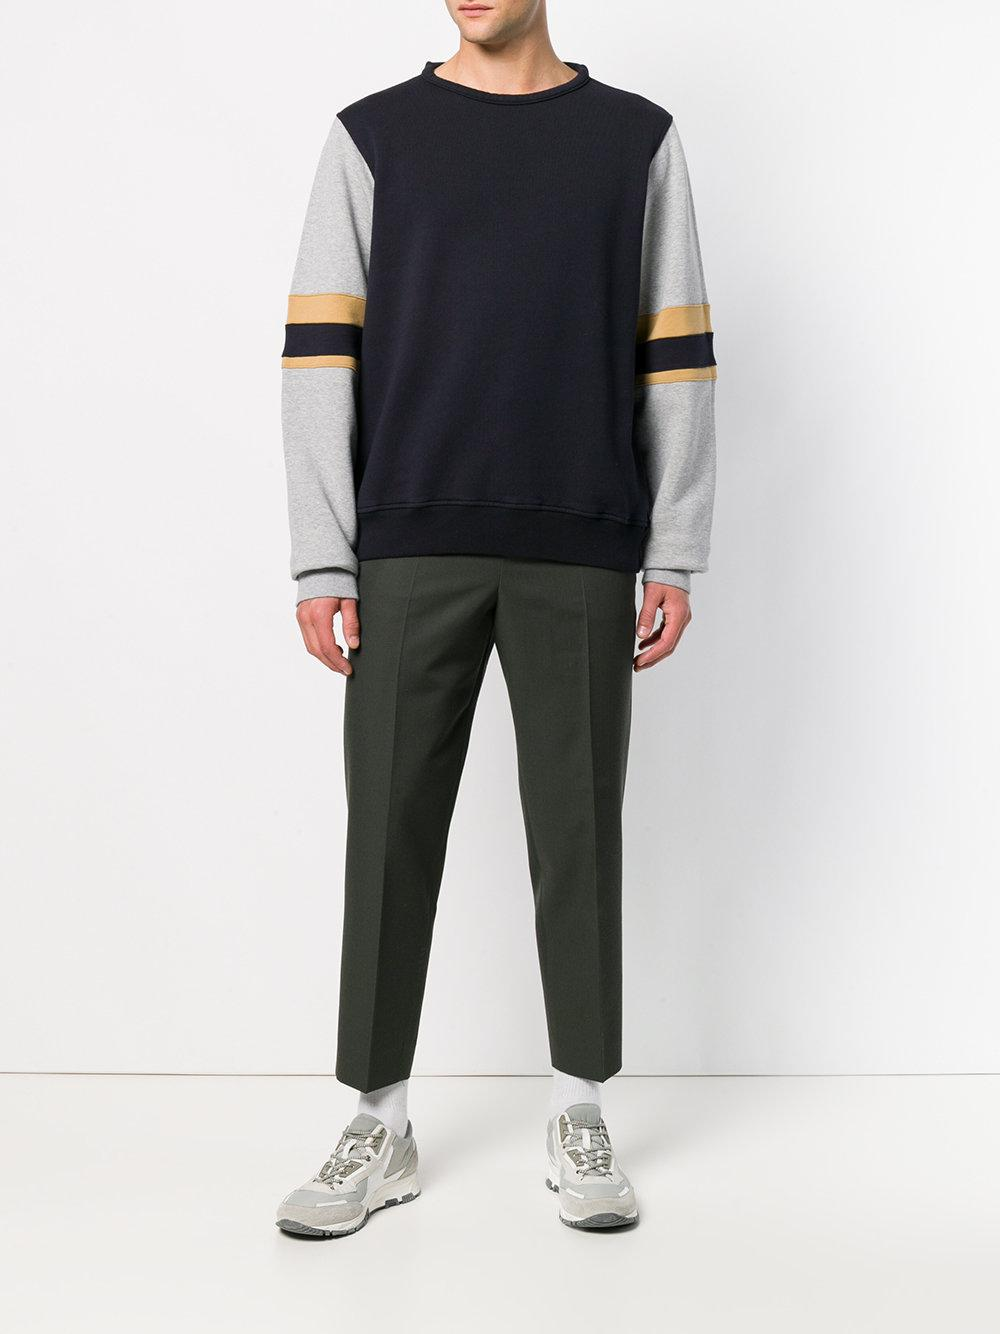 Marni Cotton Contrasting Panel Sweater in Blue for Men